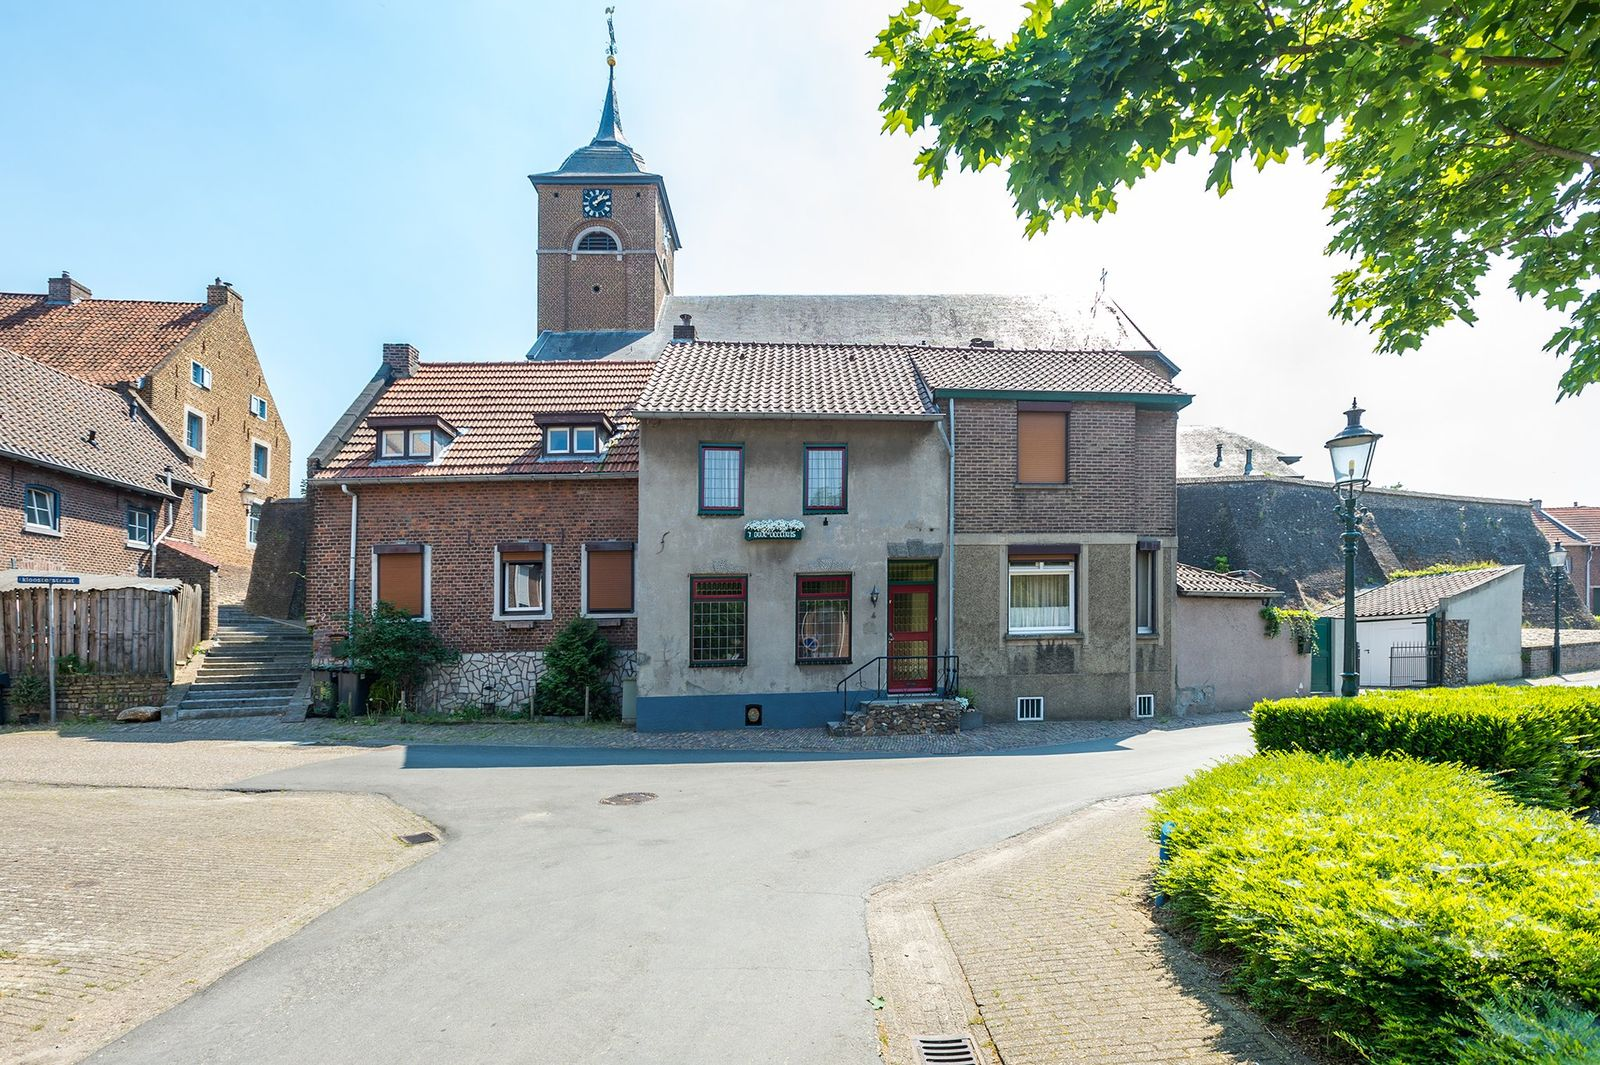 Urmonder Maasstraat 4, Urmond